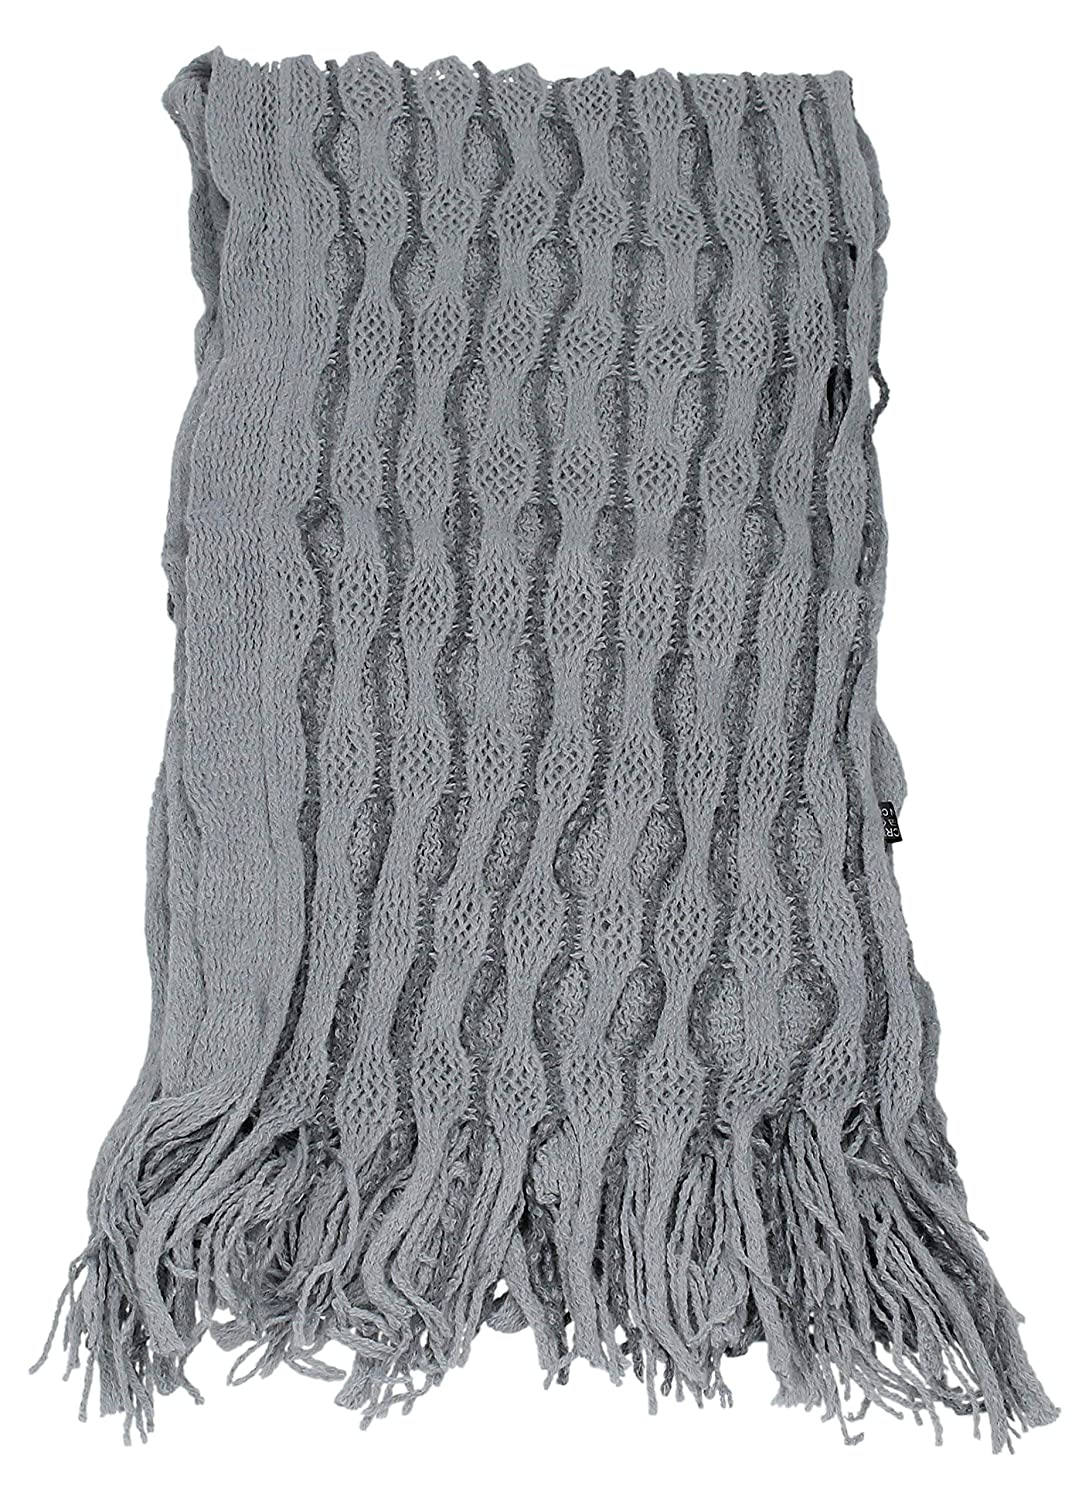 Brooklyn Tassel Detail Two Tone Long Warm Scarf in Grey MIC (Made in China)